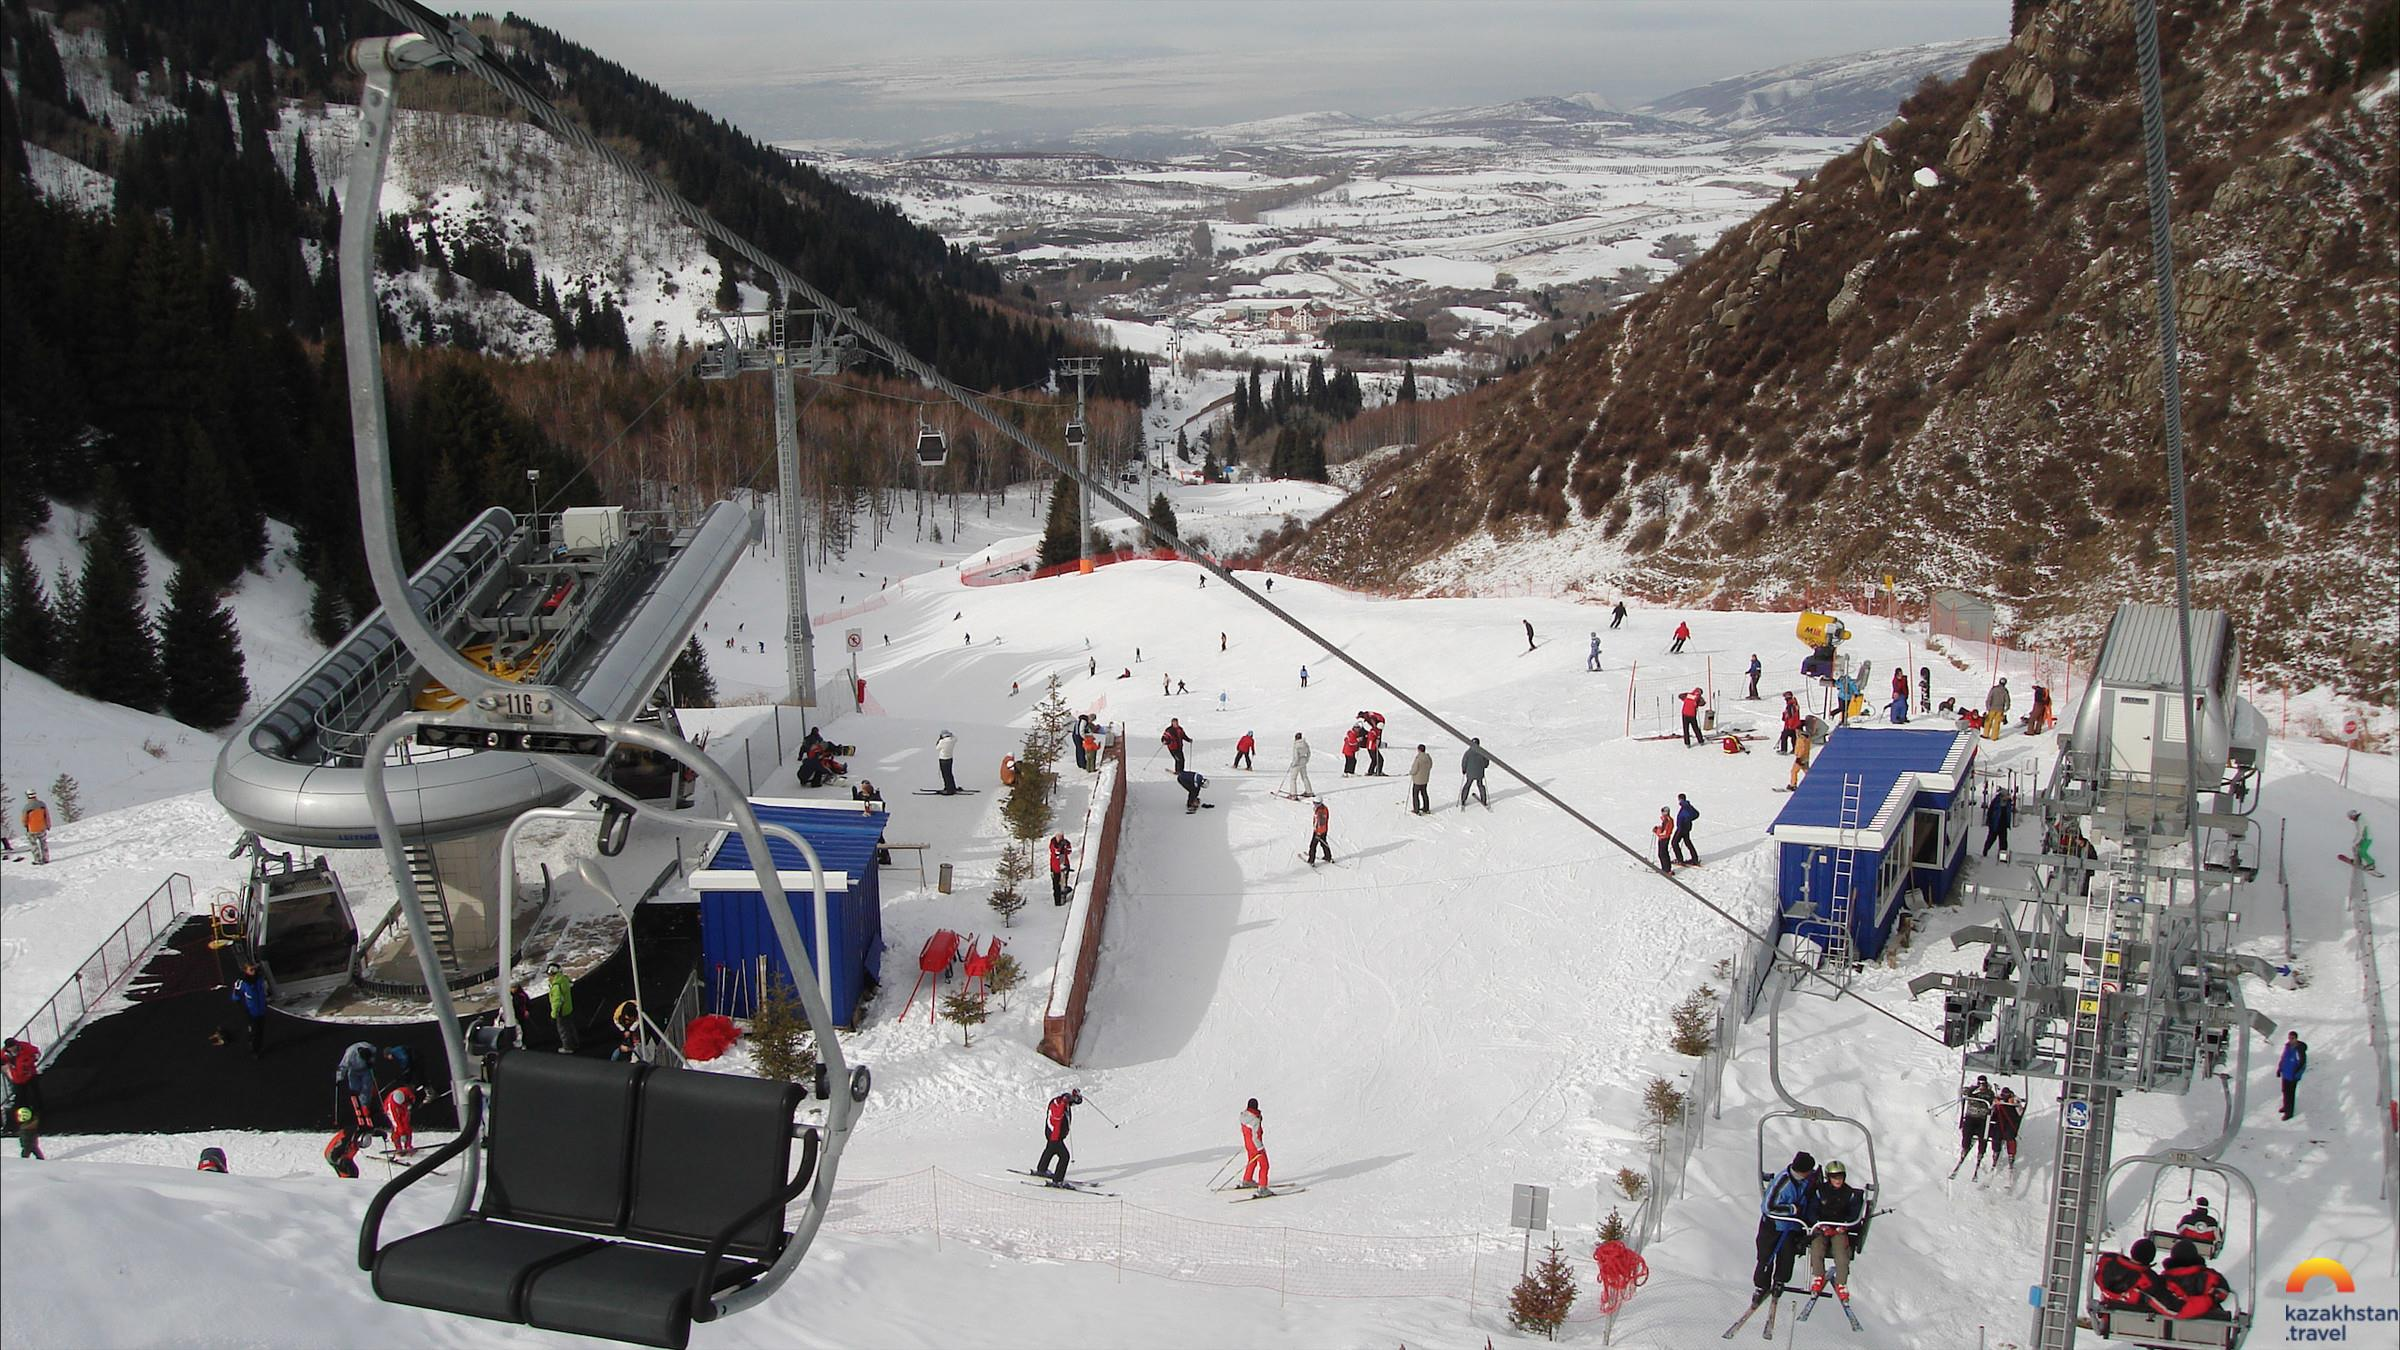 Tabagan Ski Resort